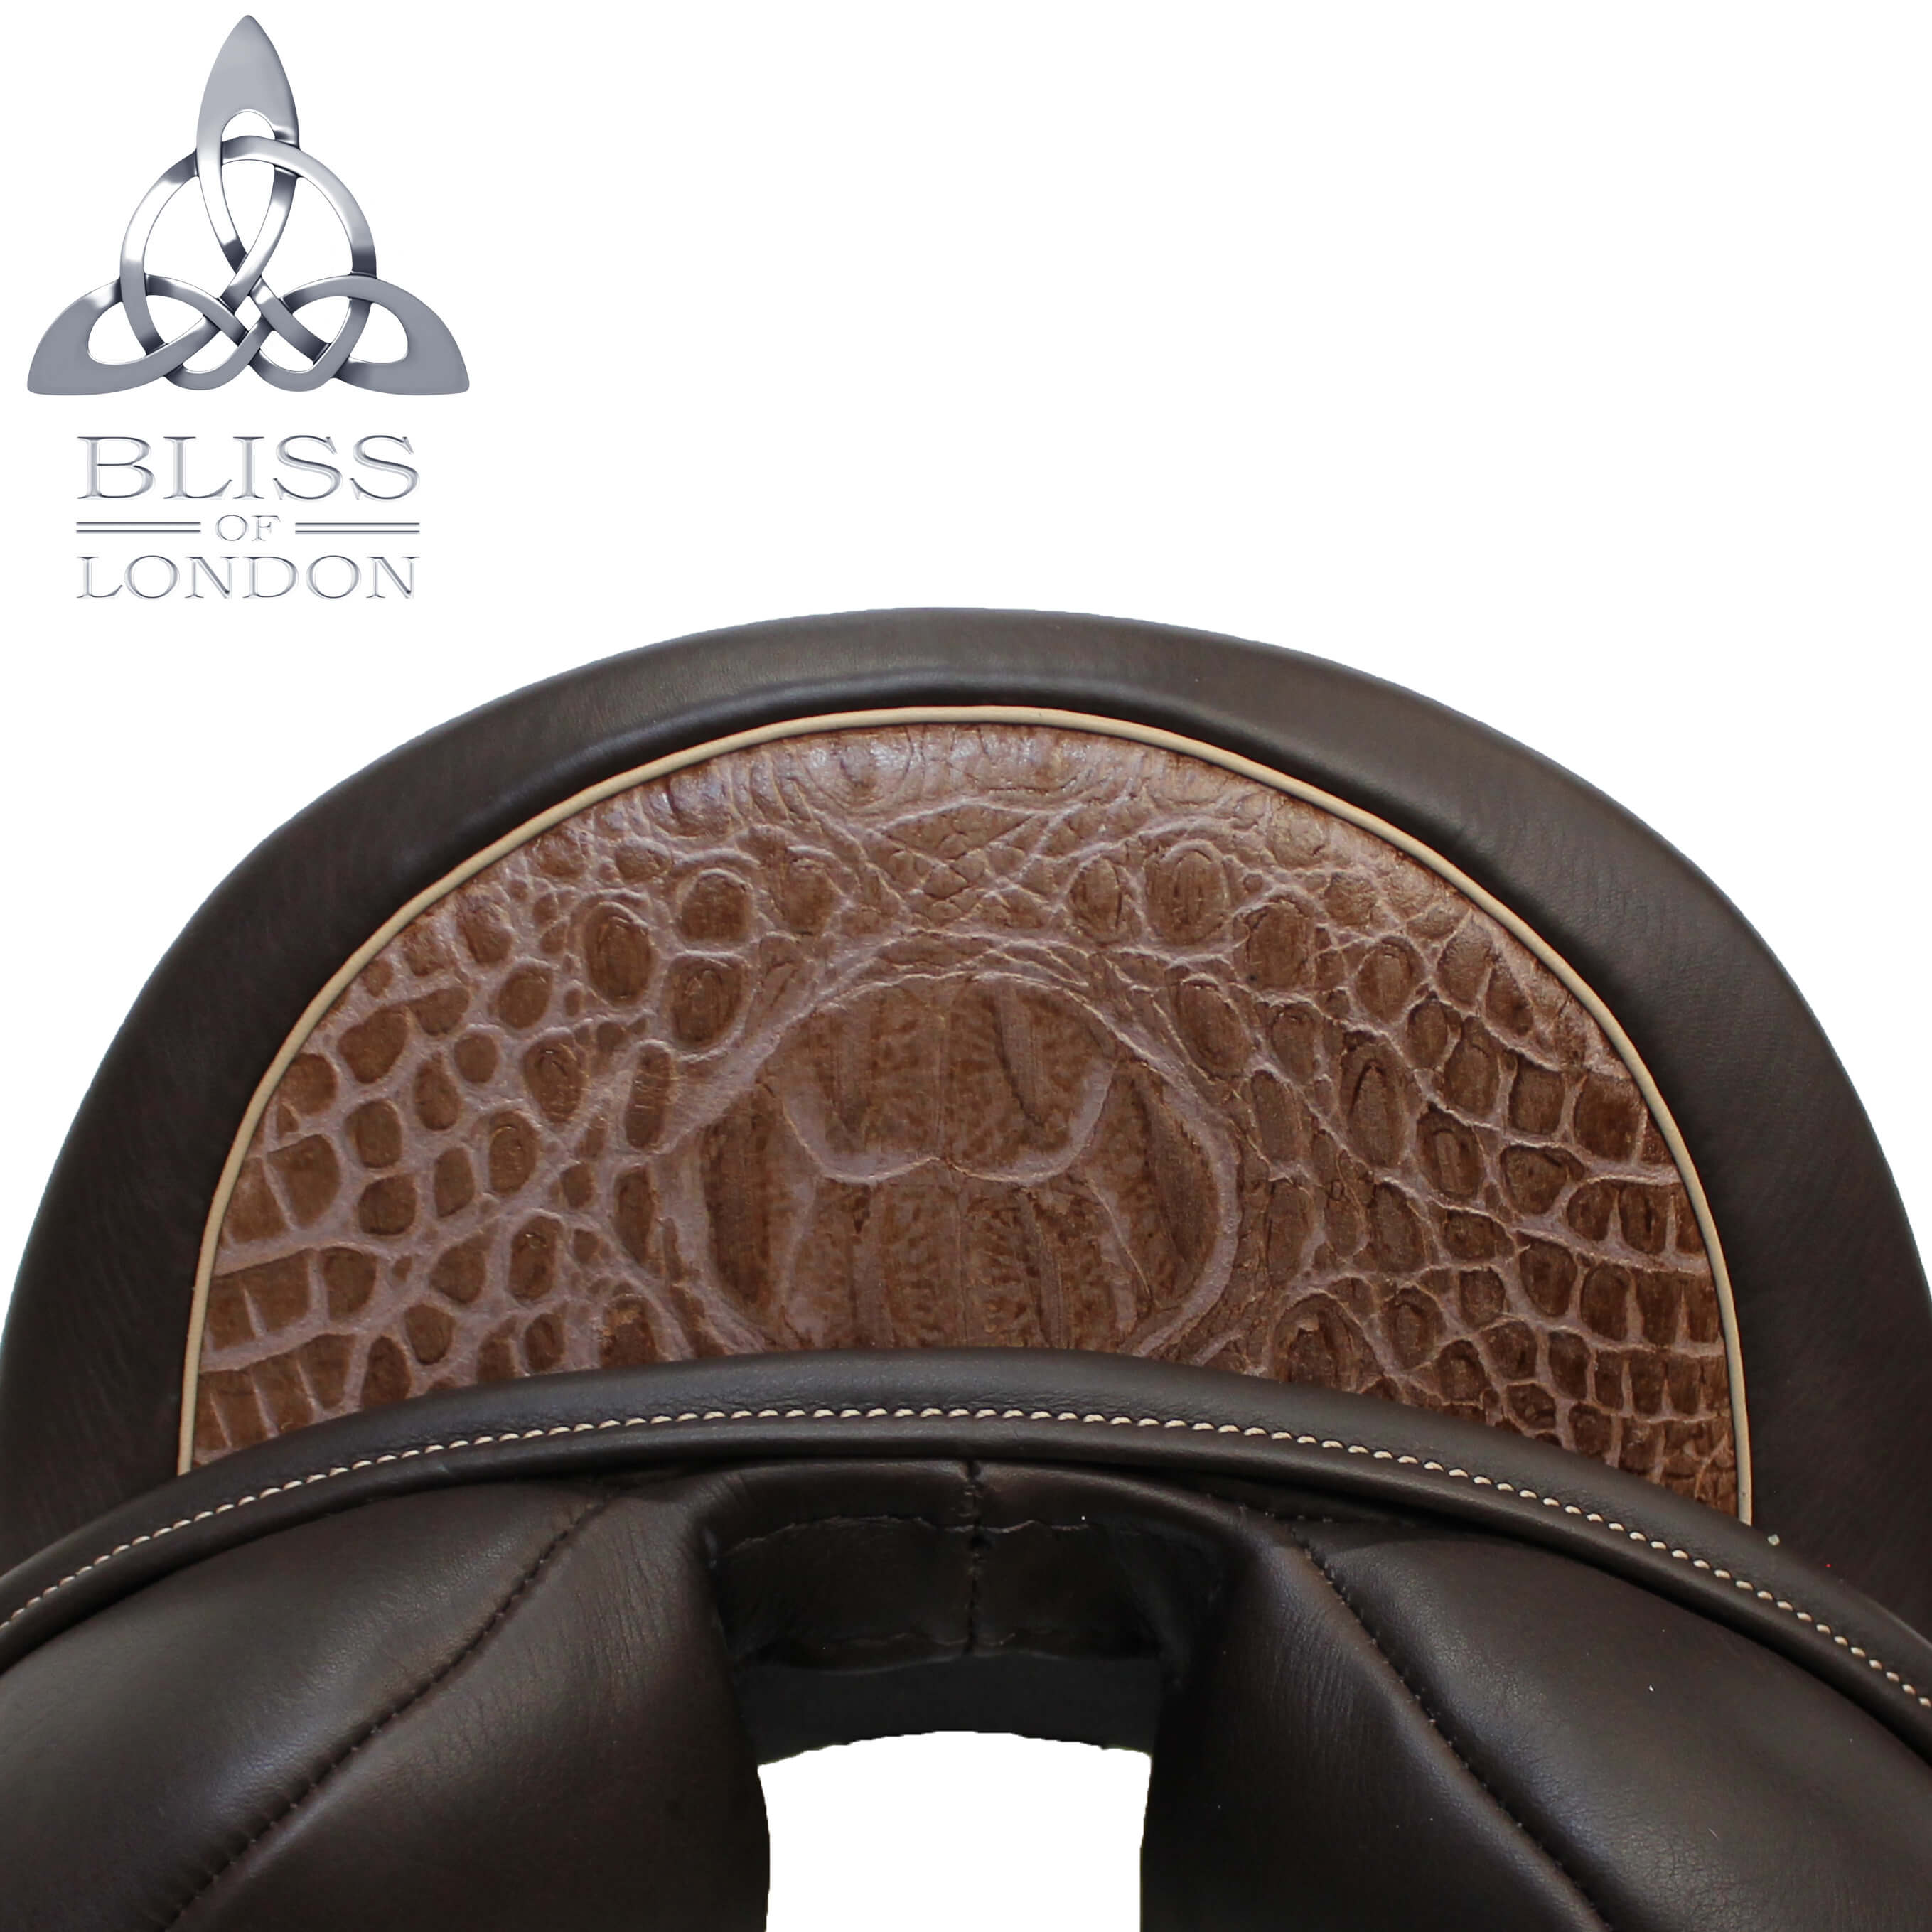 cantle Bliss Saddle Image brown croc badge